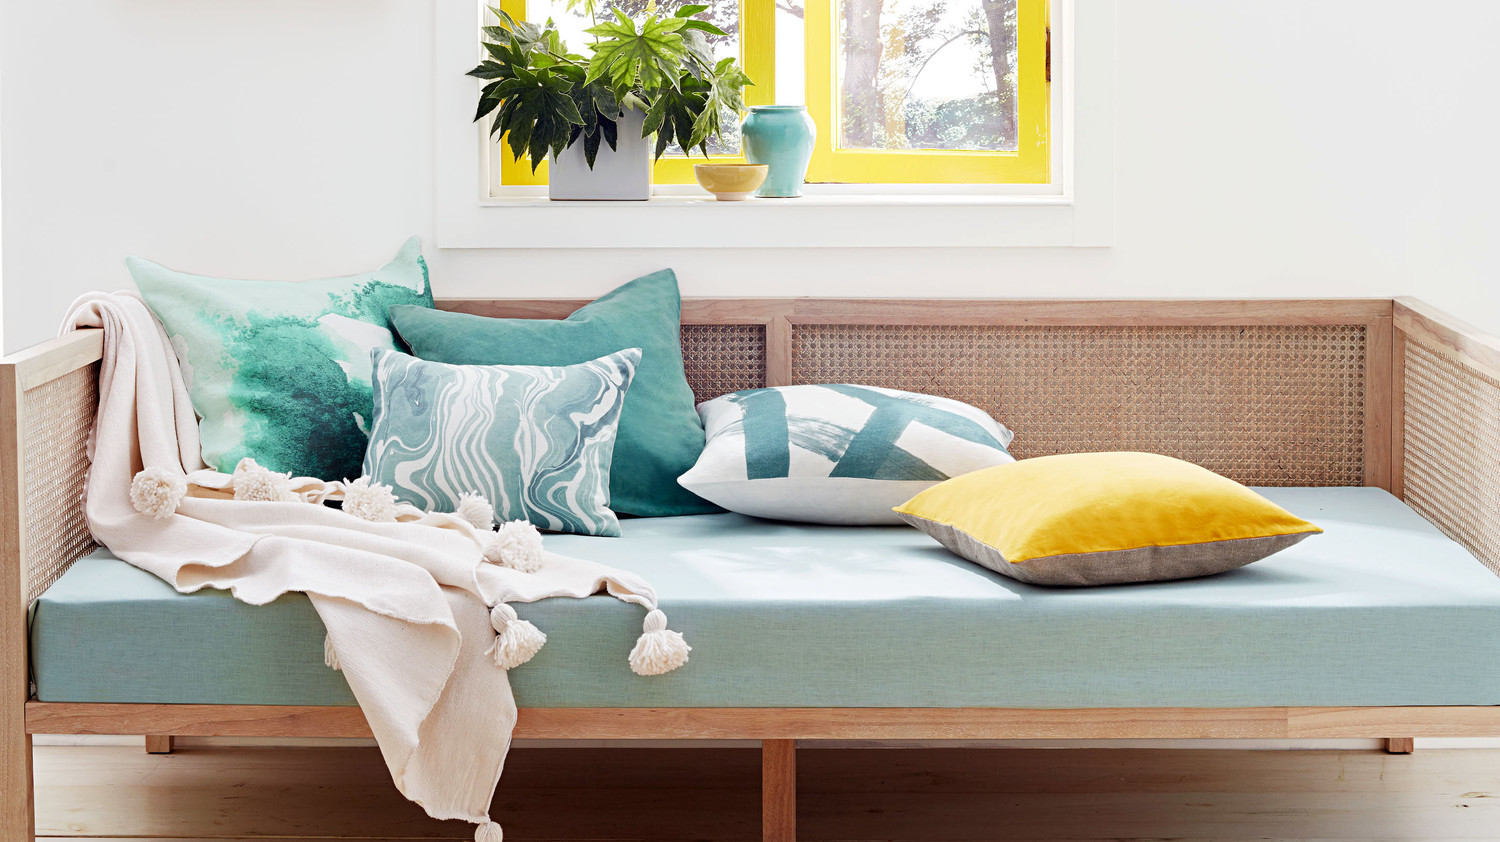 Bright Yellow And Celadon Are Having A Home Decor Moment | Martha Stewart Part 73